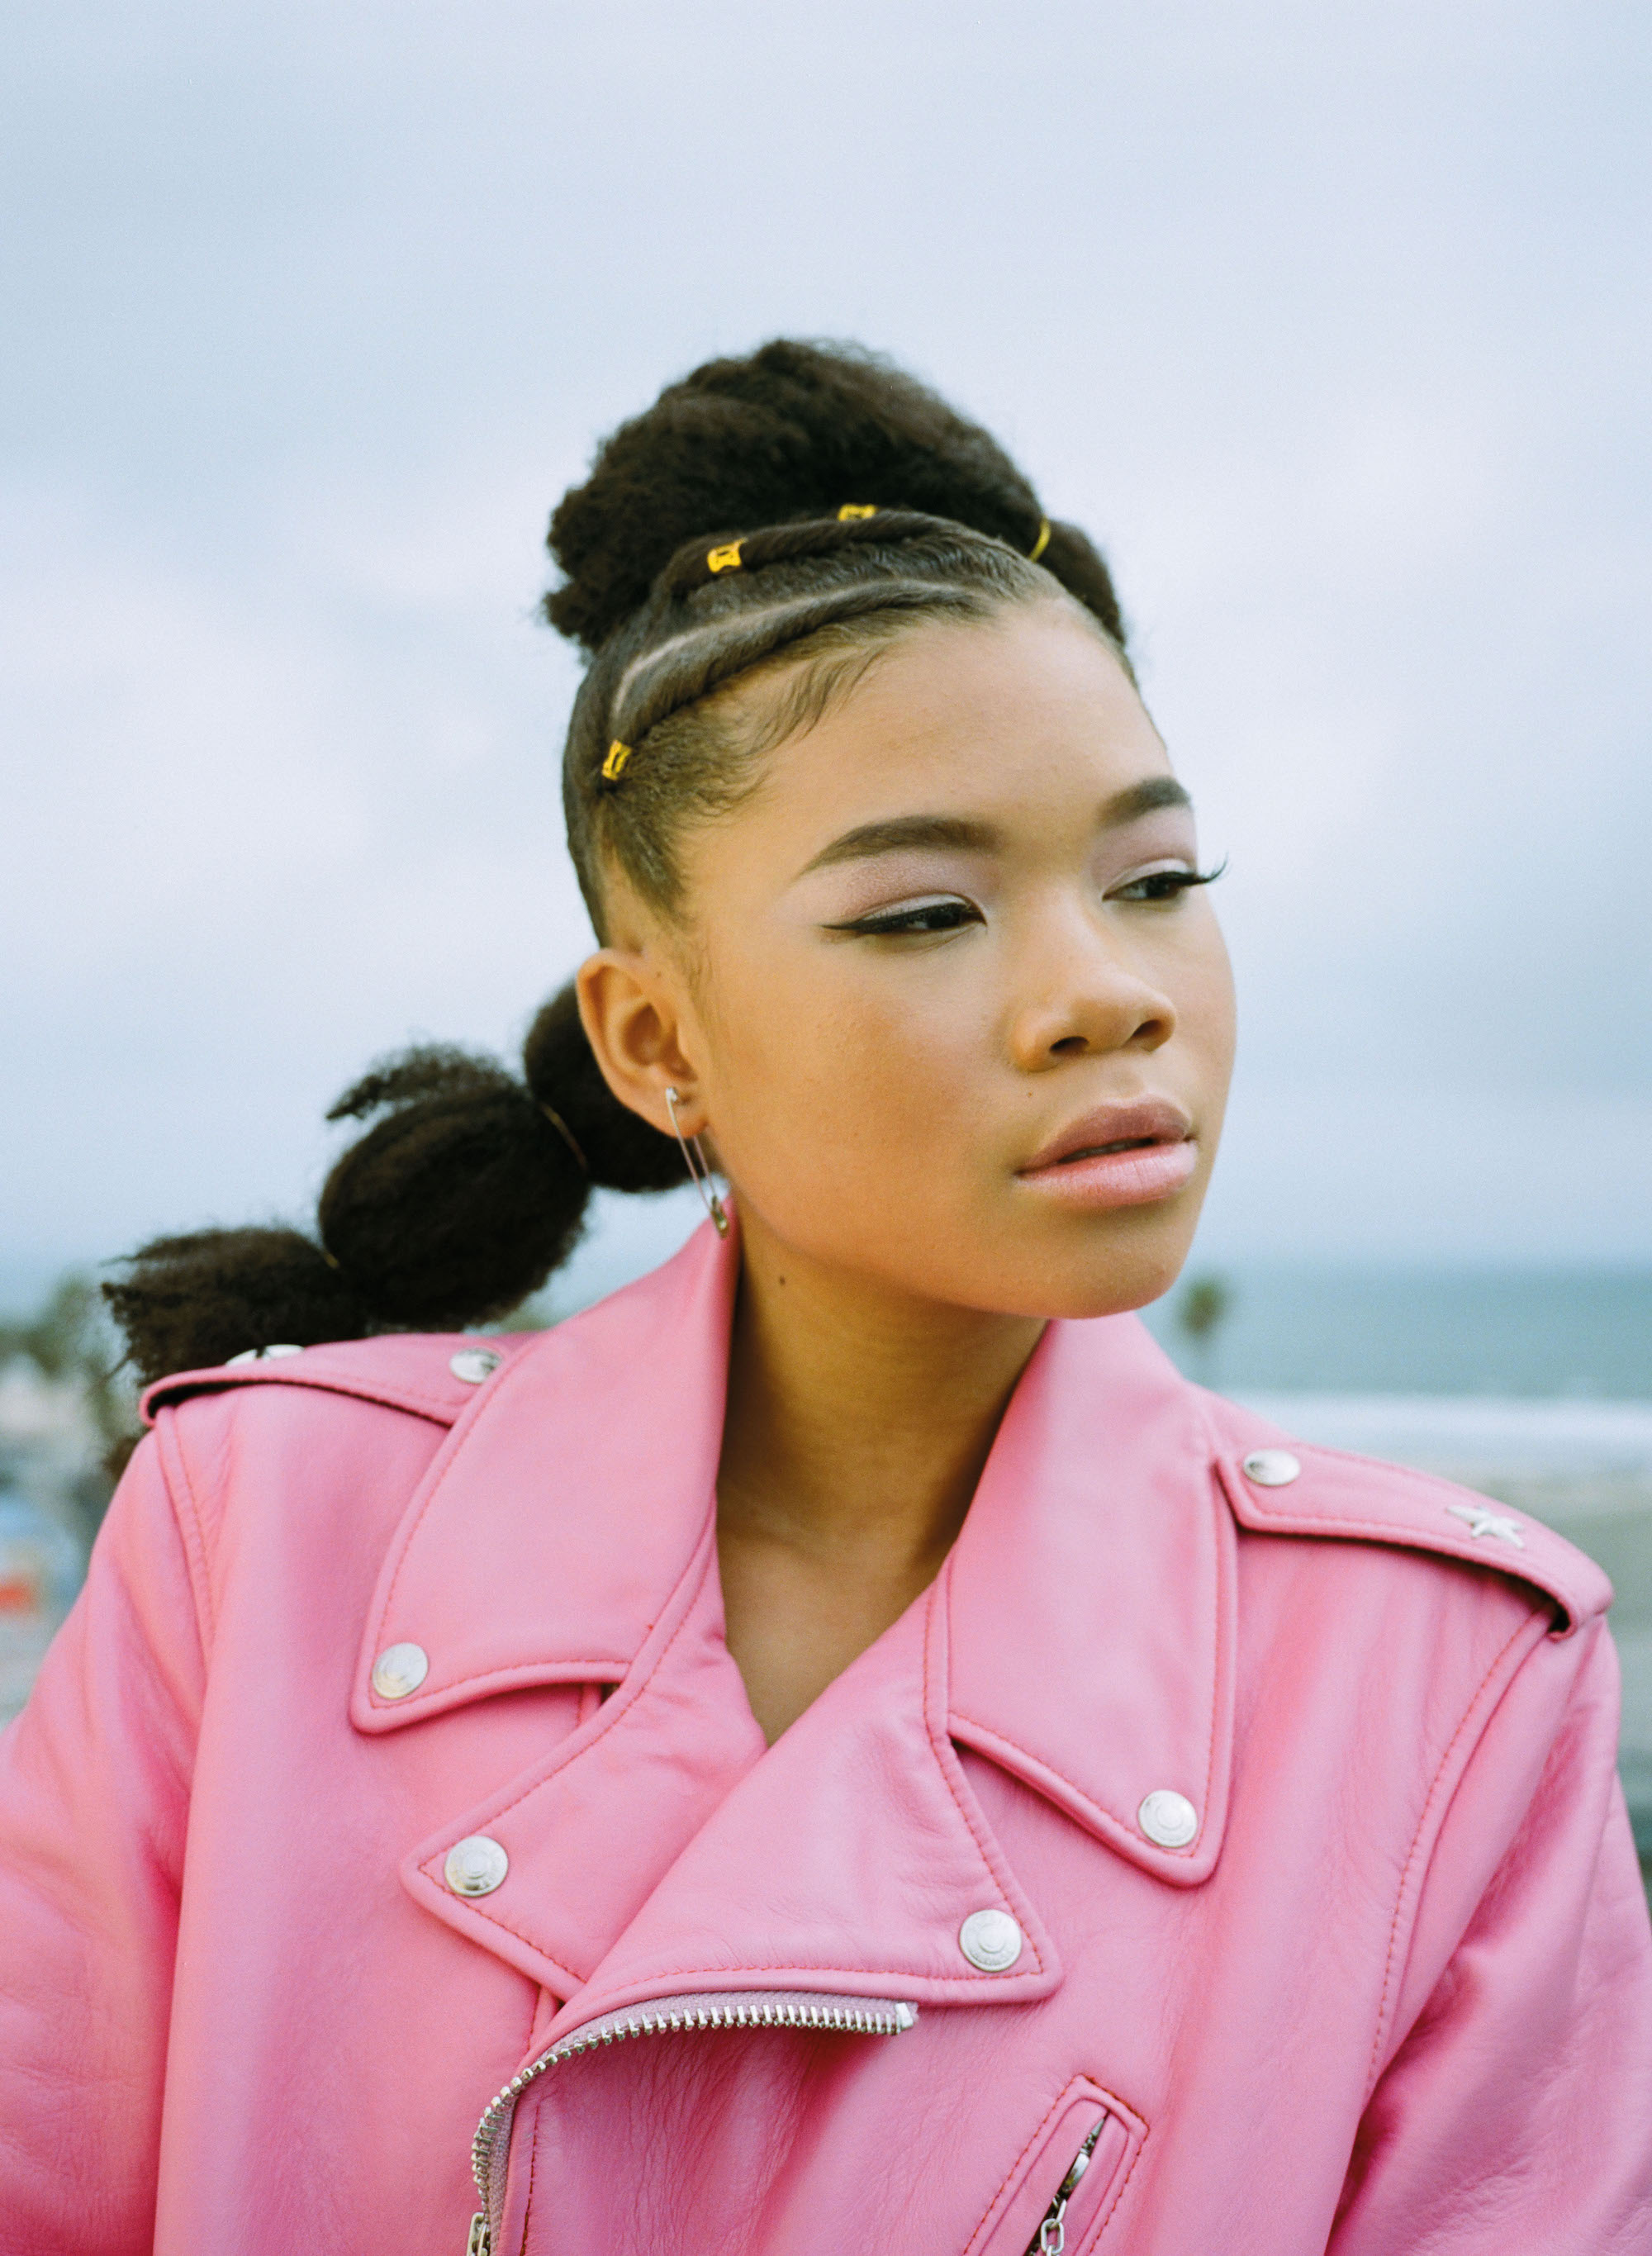 Actress Storm Reid in Summer 19 issue of Wonderland pink jacket